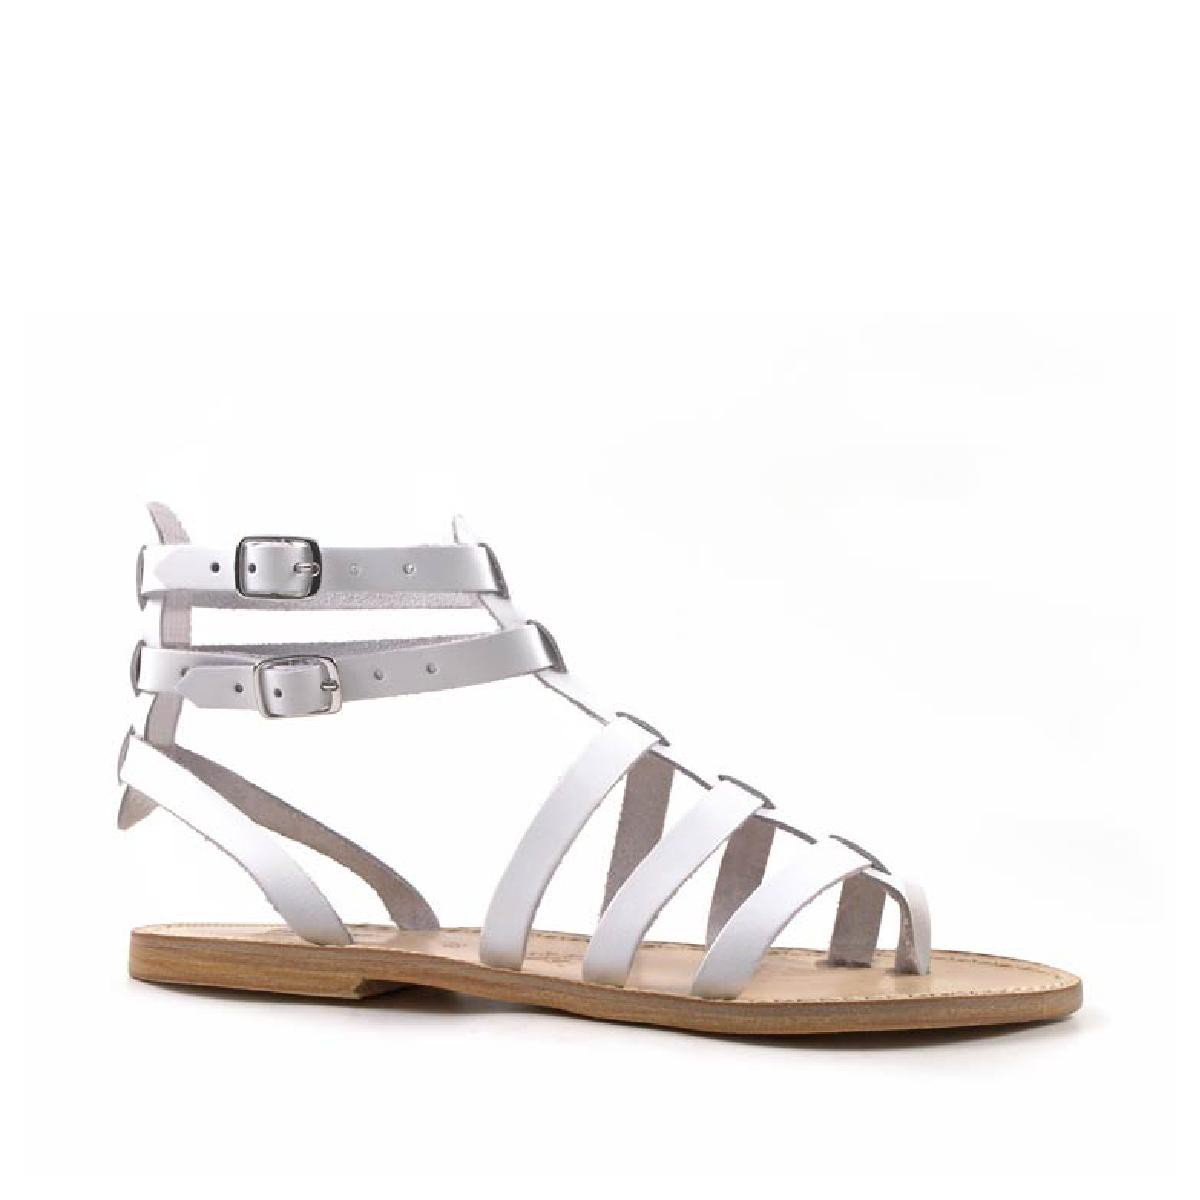 White gladiator sandals for ladies Handmade in Italy in genuine leather 7a7e149c96